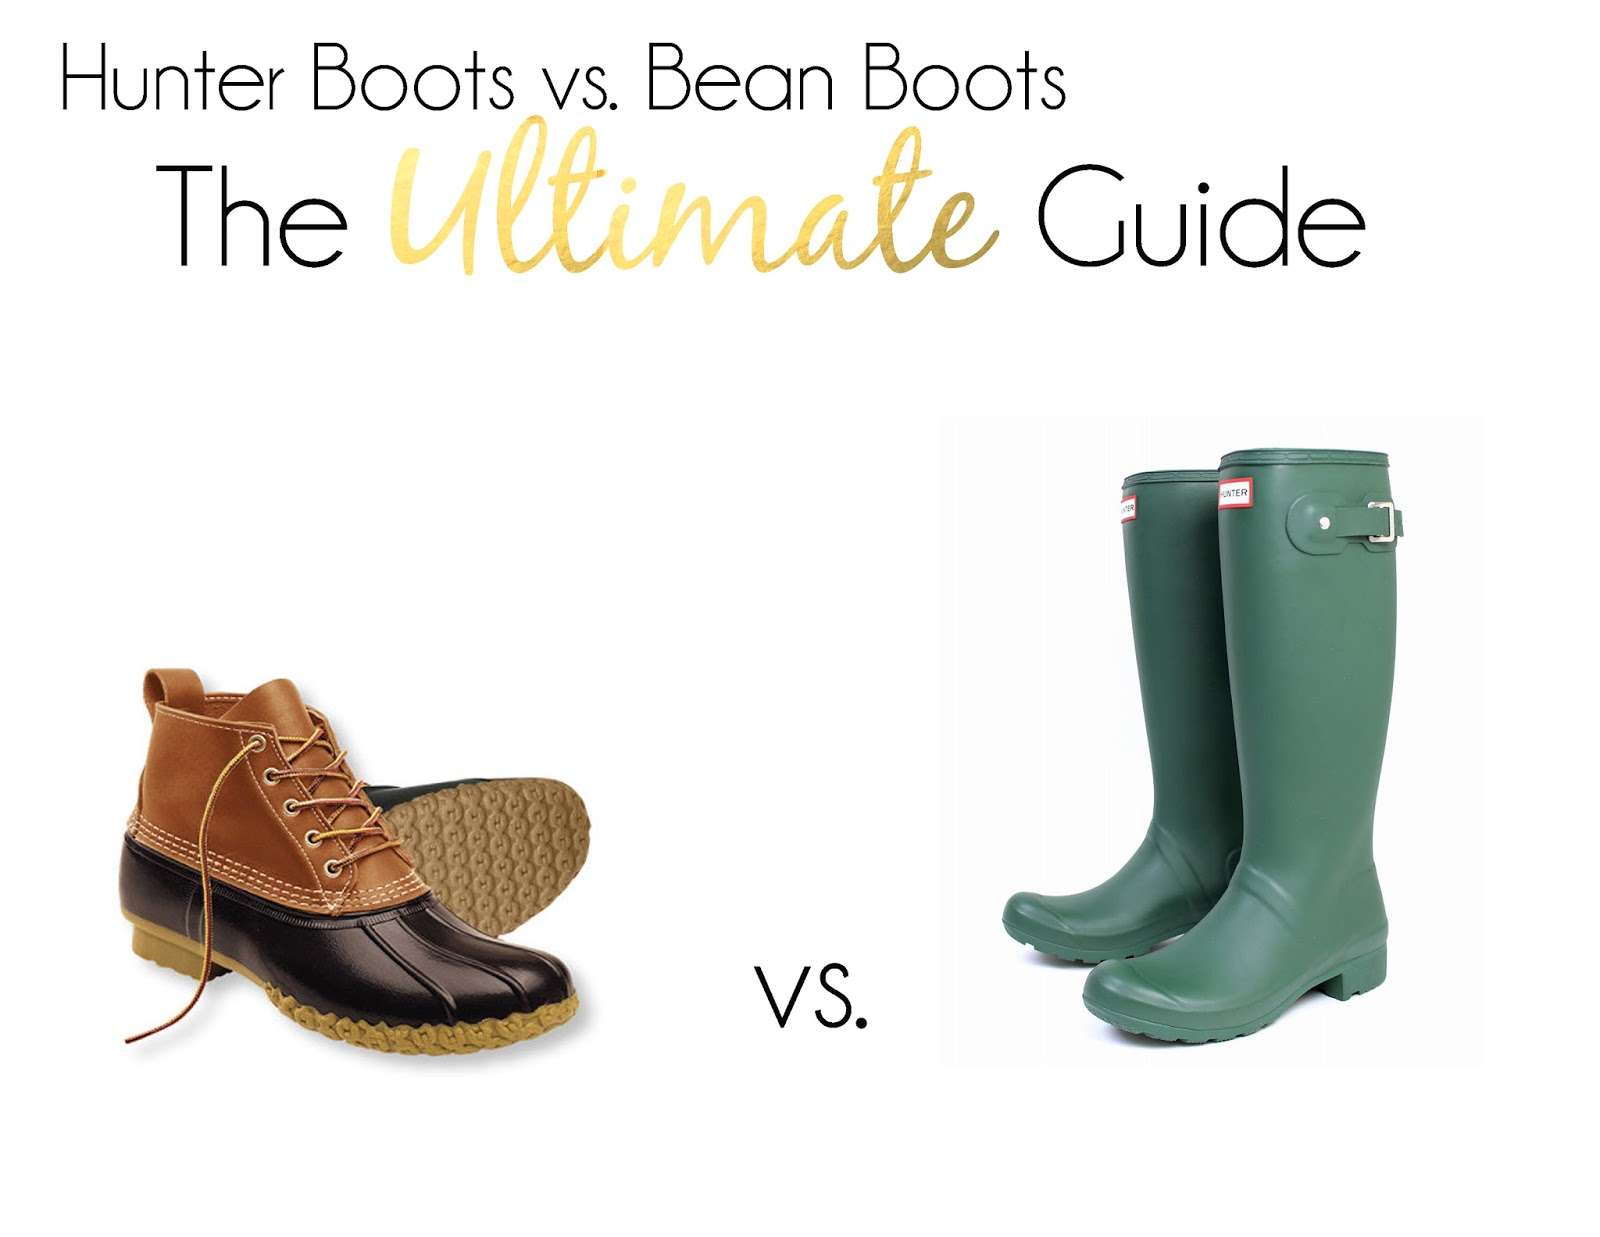 L.L. Bean Boots vs. Hunter Boots: The Ultimate Guide